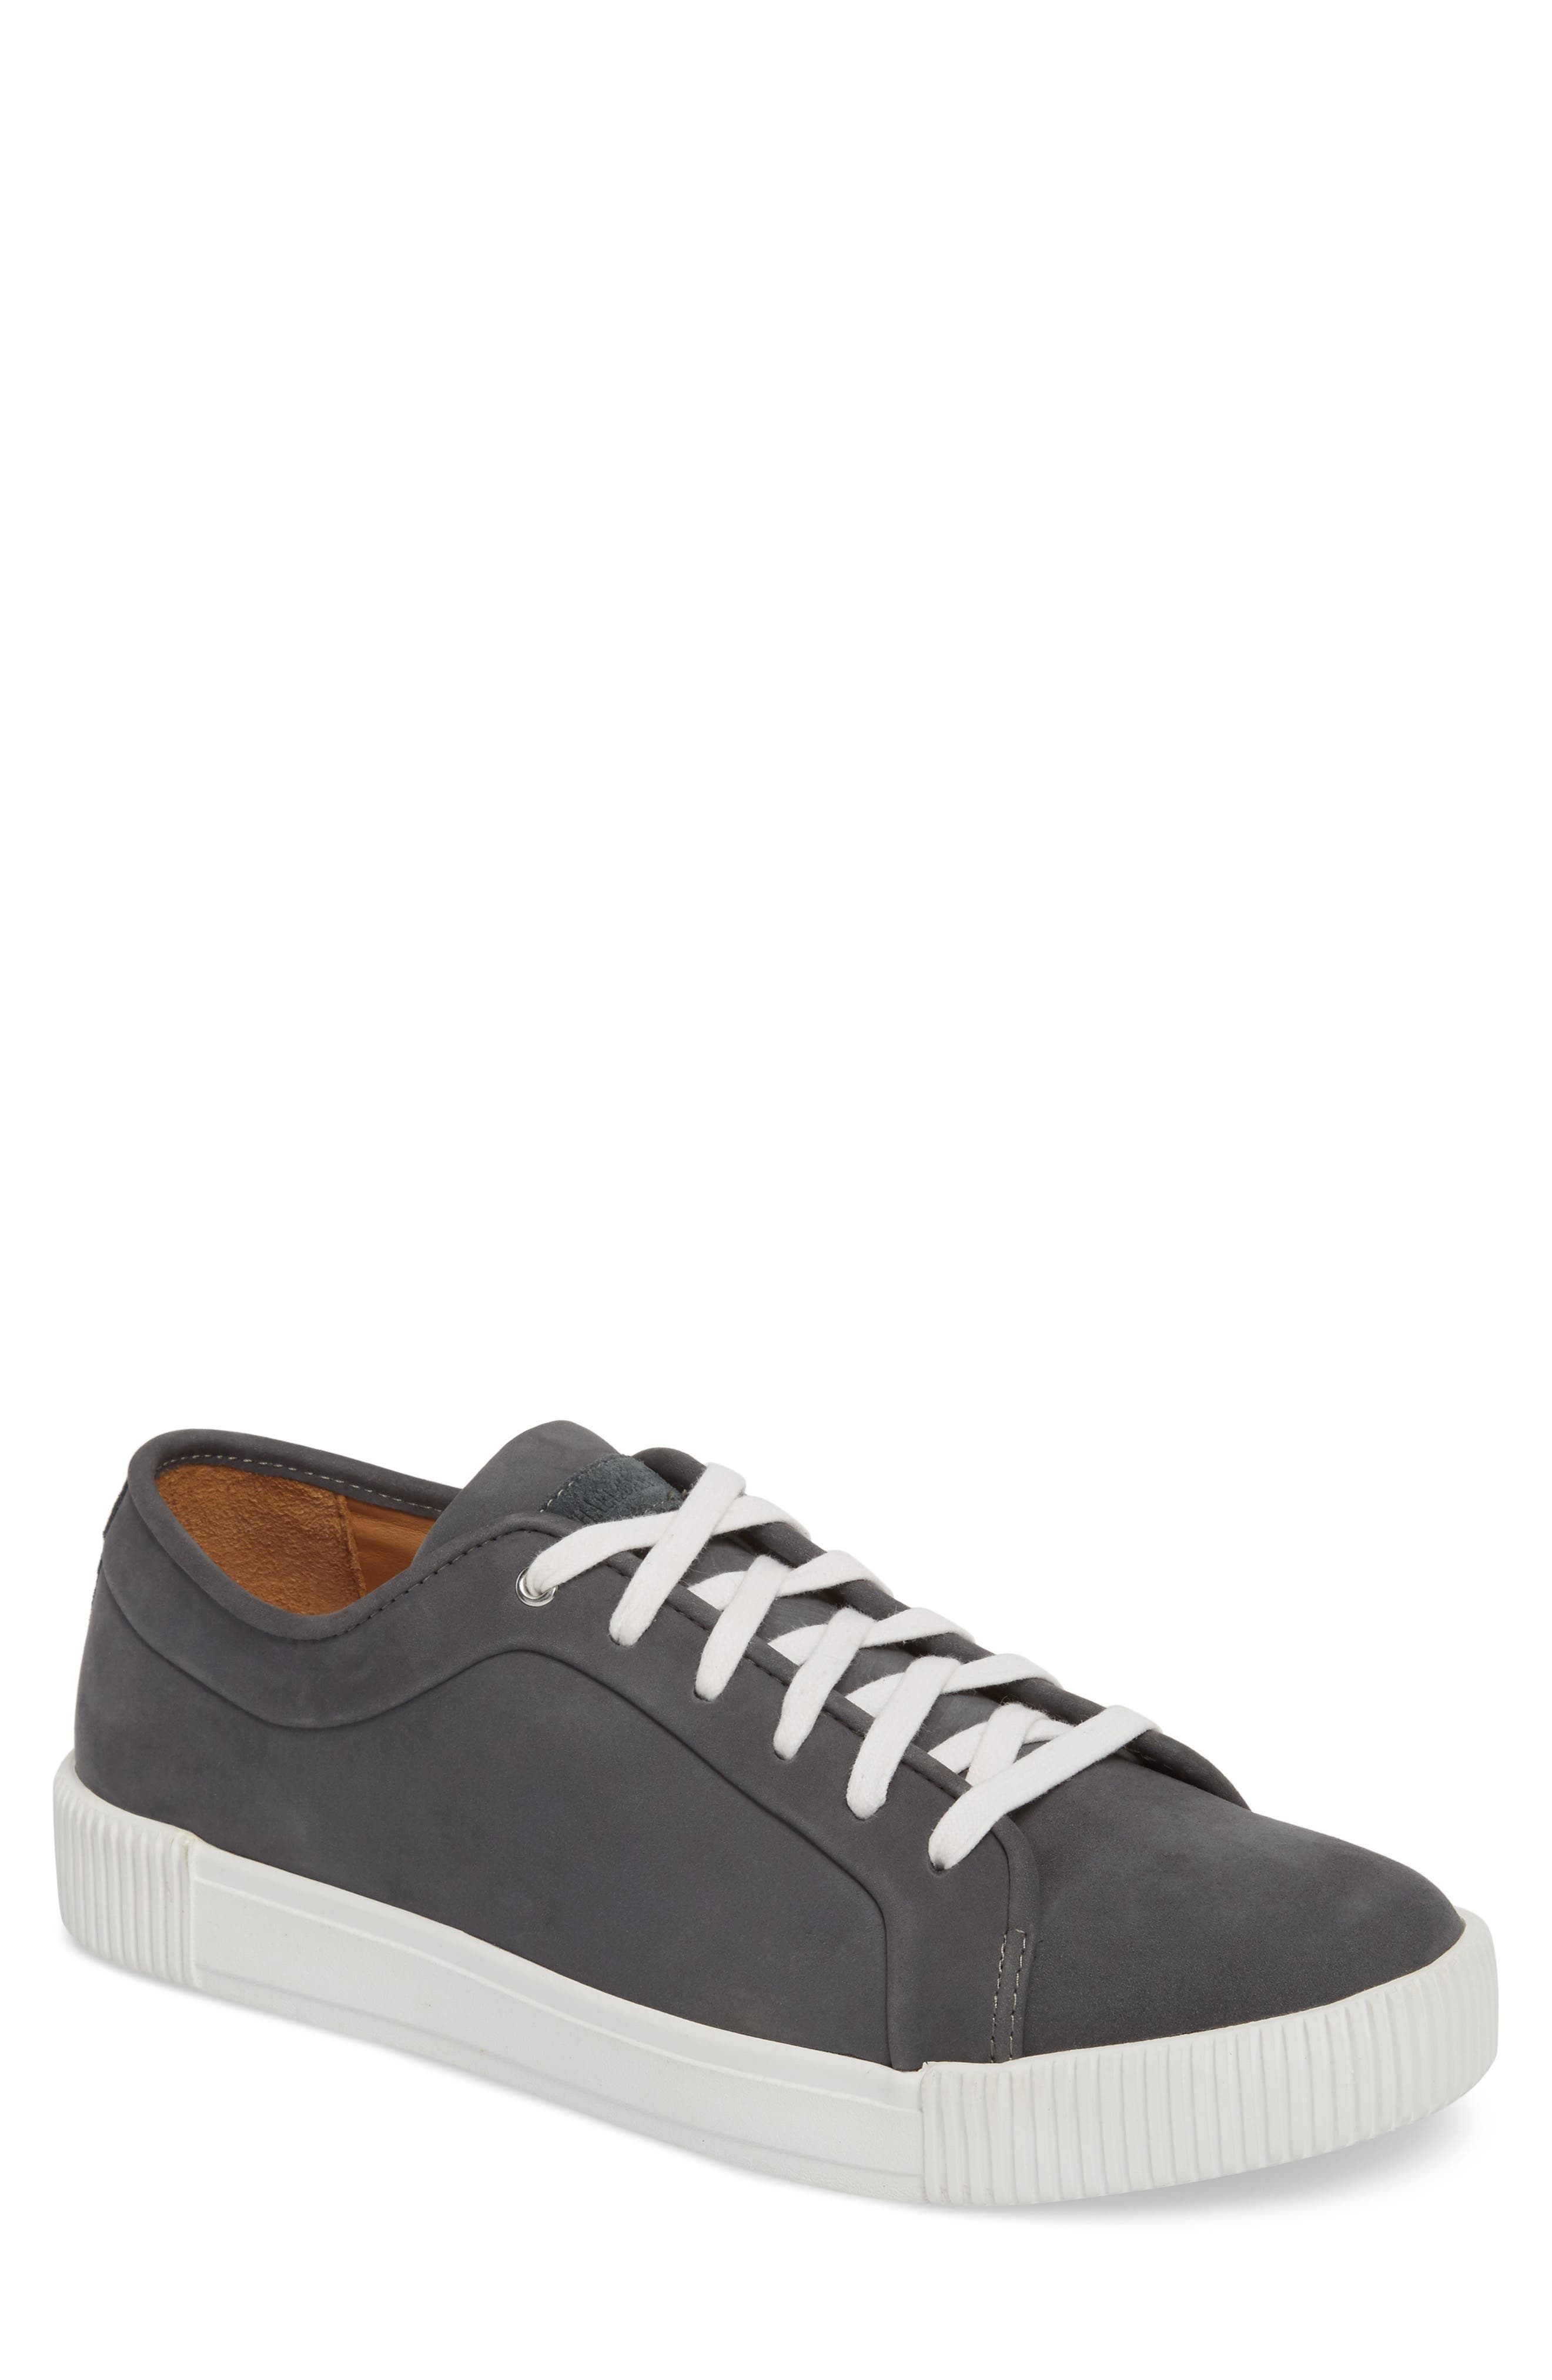 Lyons Low Top Sneaker,                         Main,                         color, 020